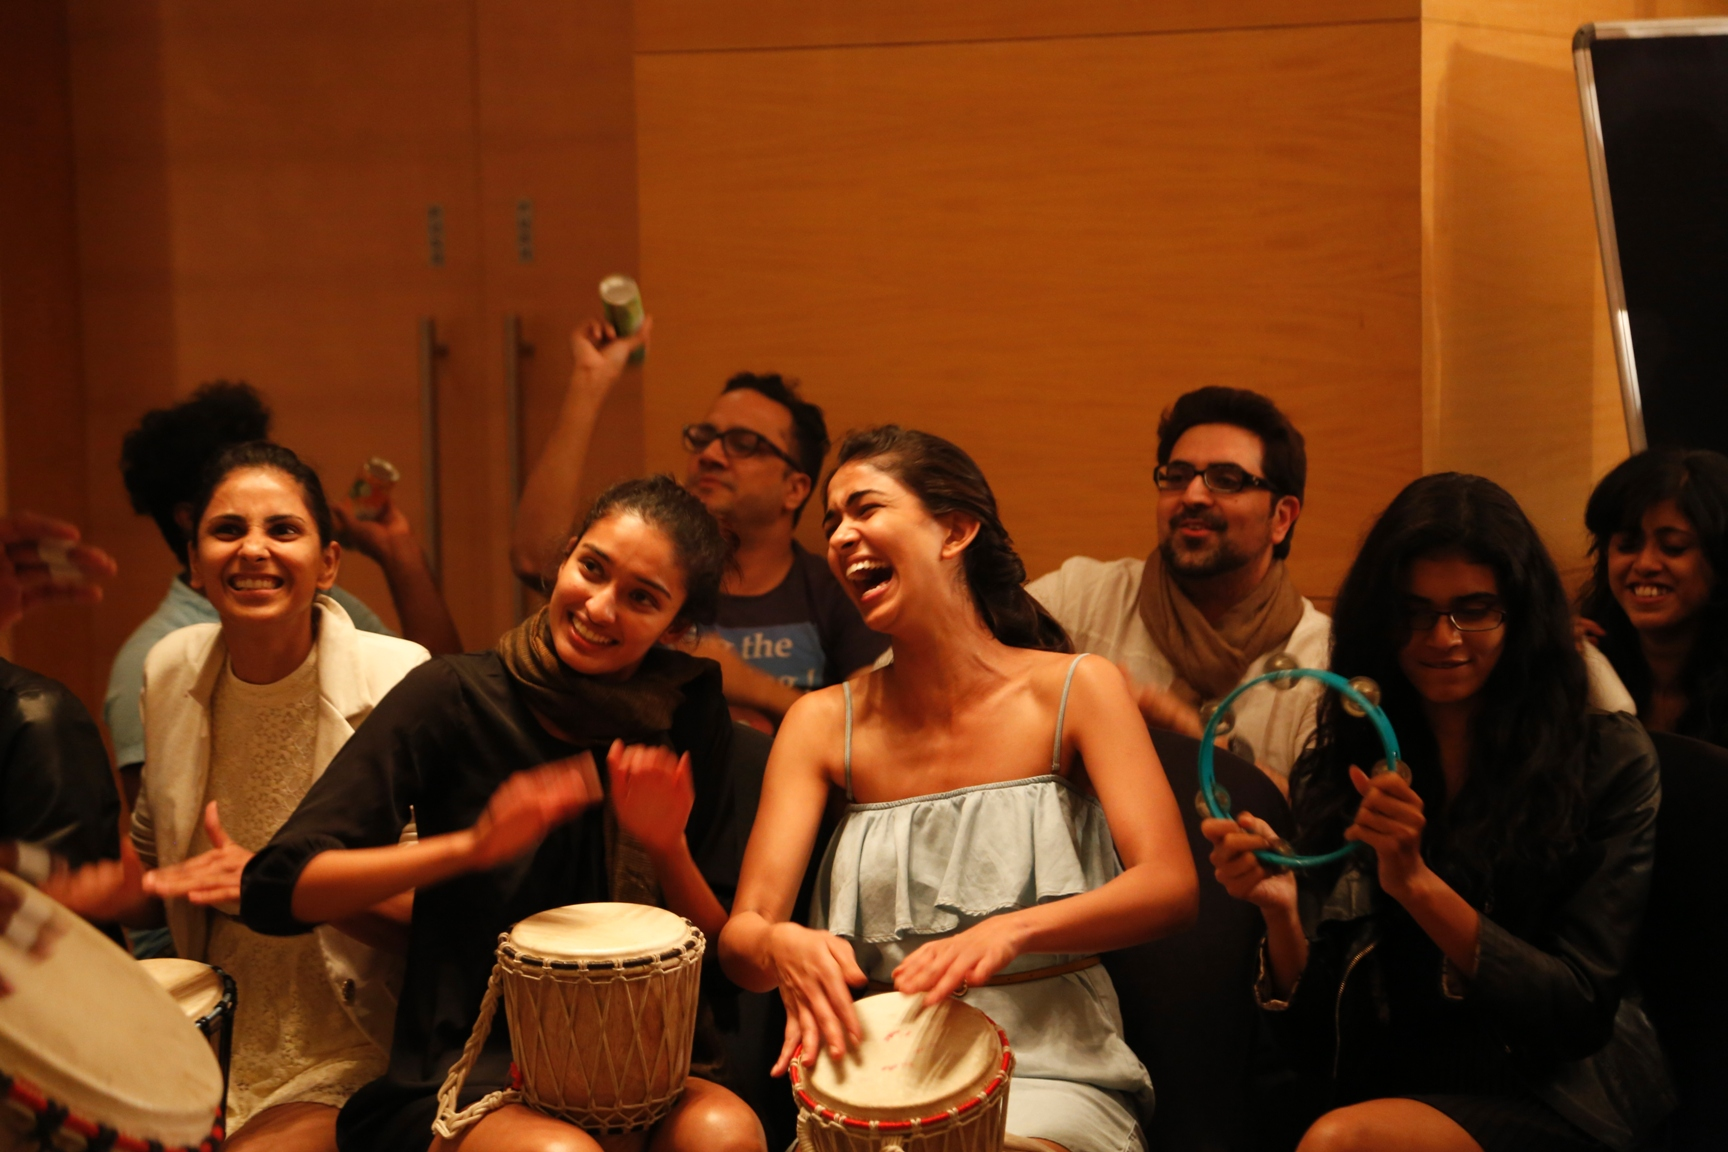 Drum Circle, a recently introduced concept of Music Therapy aims to bond the body, mind and soul. It is a joyful celebration of rhythm, which is an extremely effective form of Music Therapy. Through the one hour session, the models, designers and others p